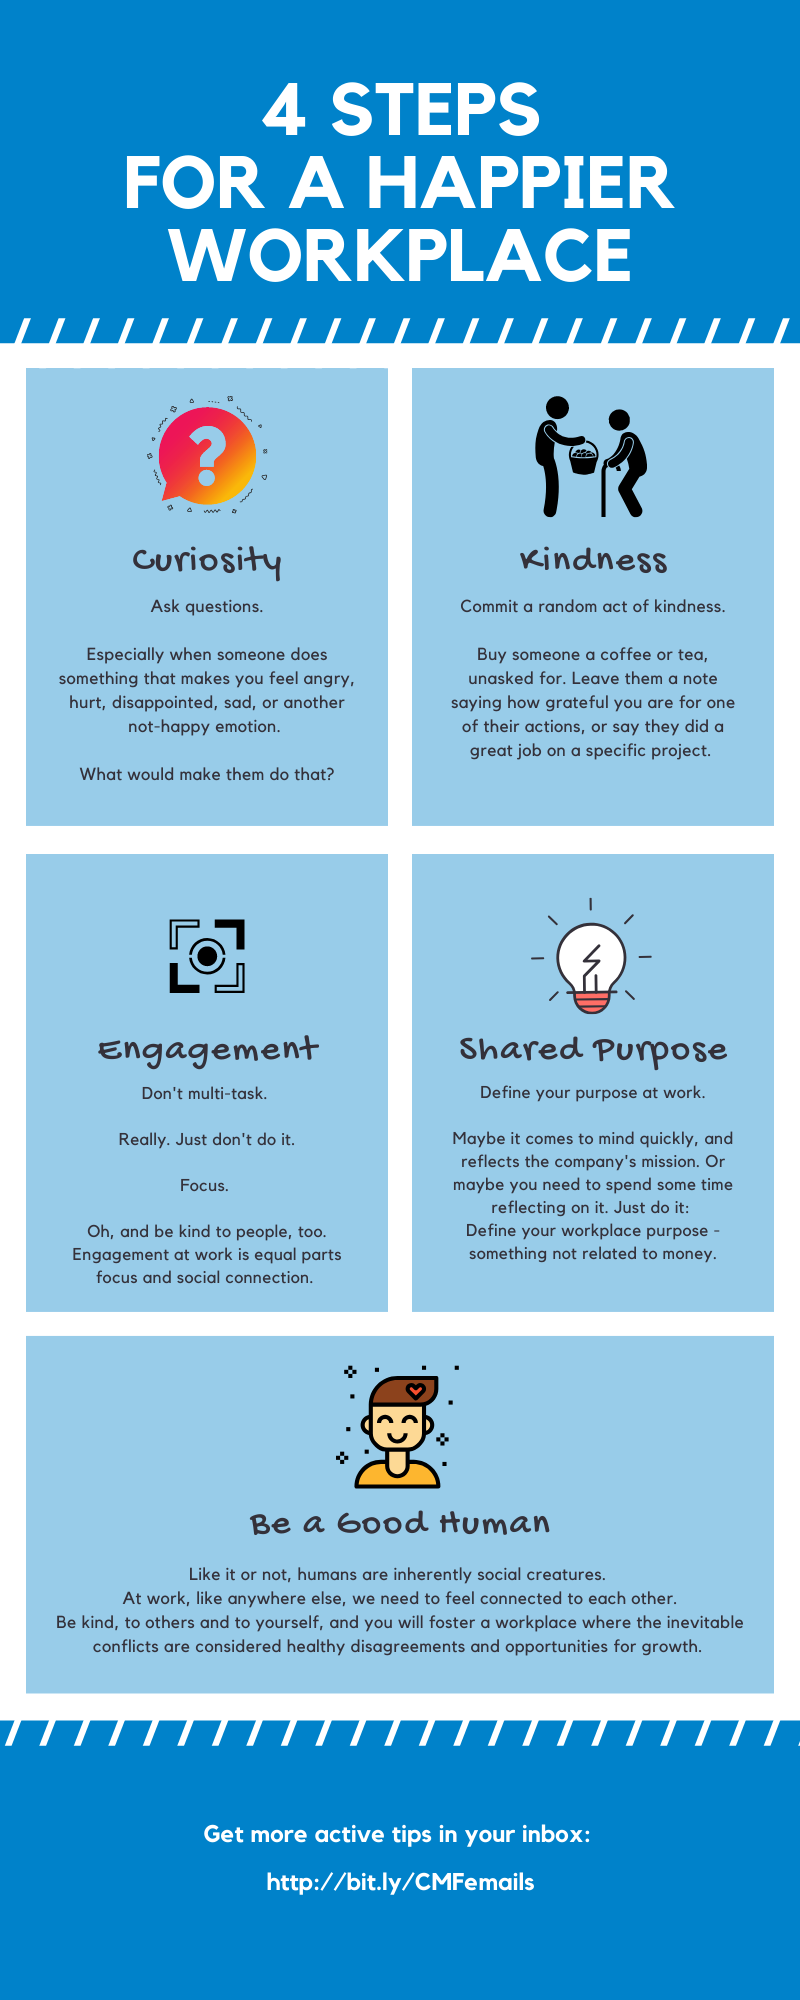 Red 4 Steps for a Happier Workplace Infographic.png